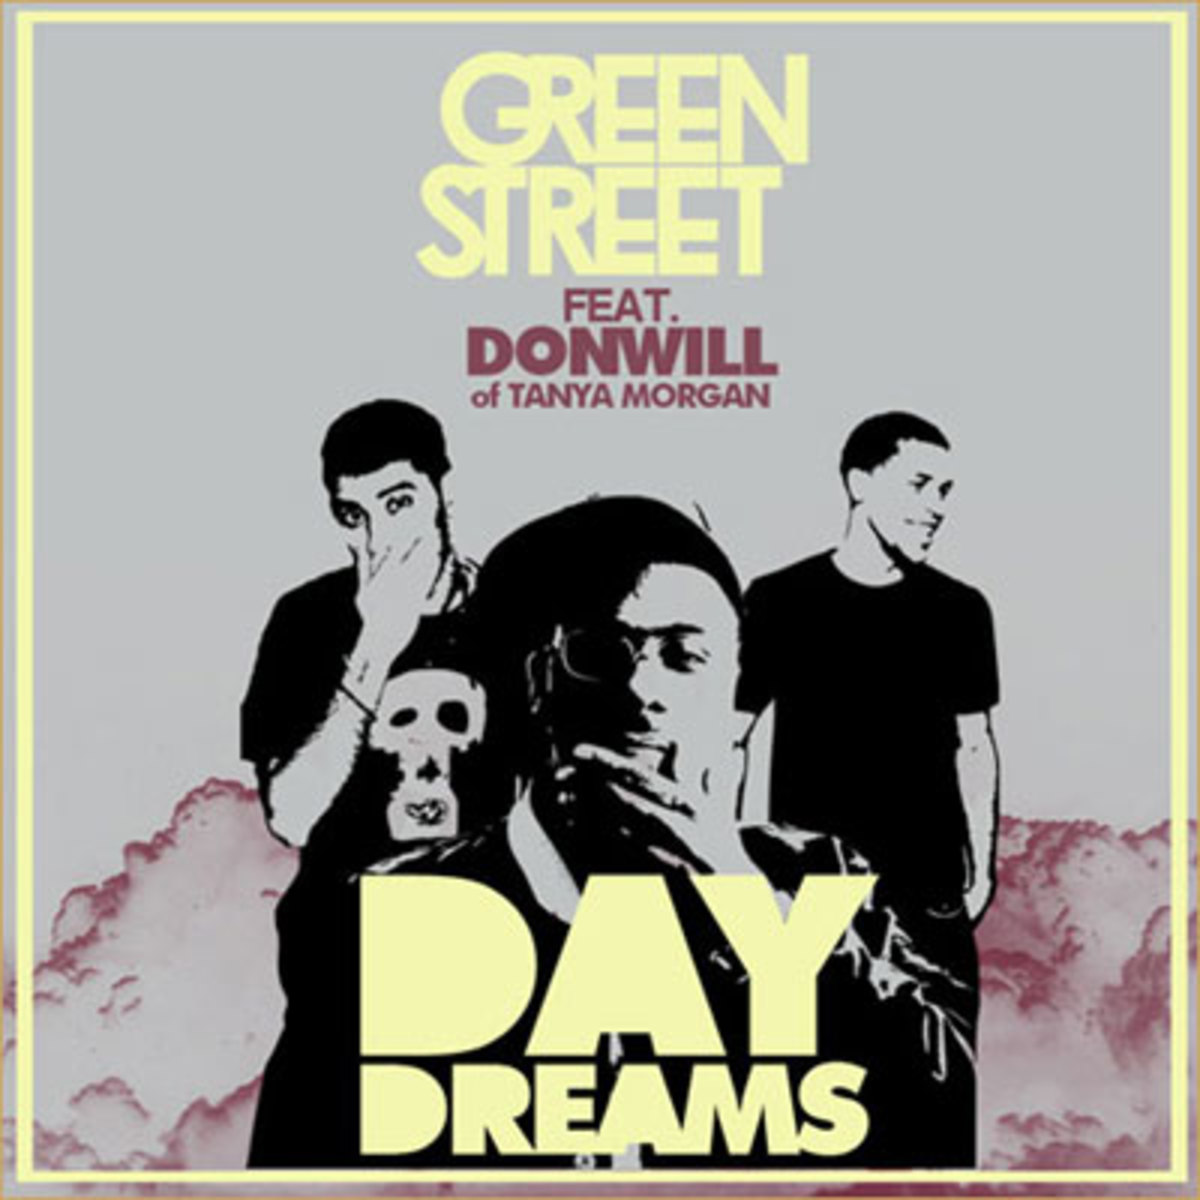 greenstreet-daydreams.jpg